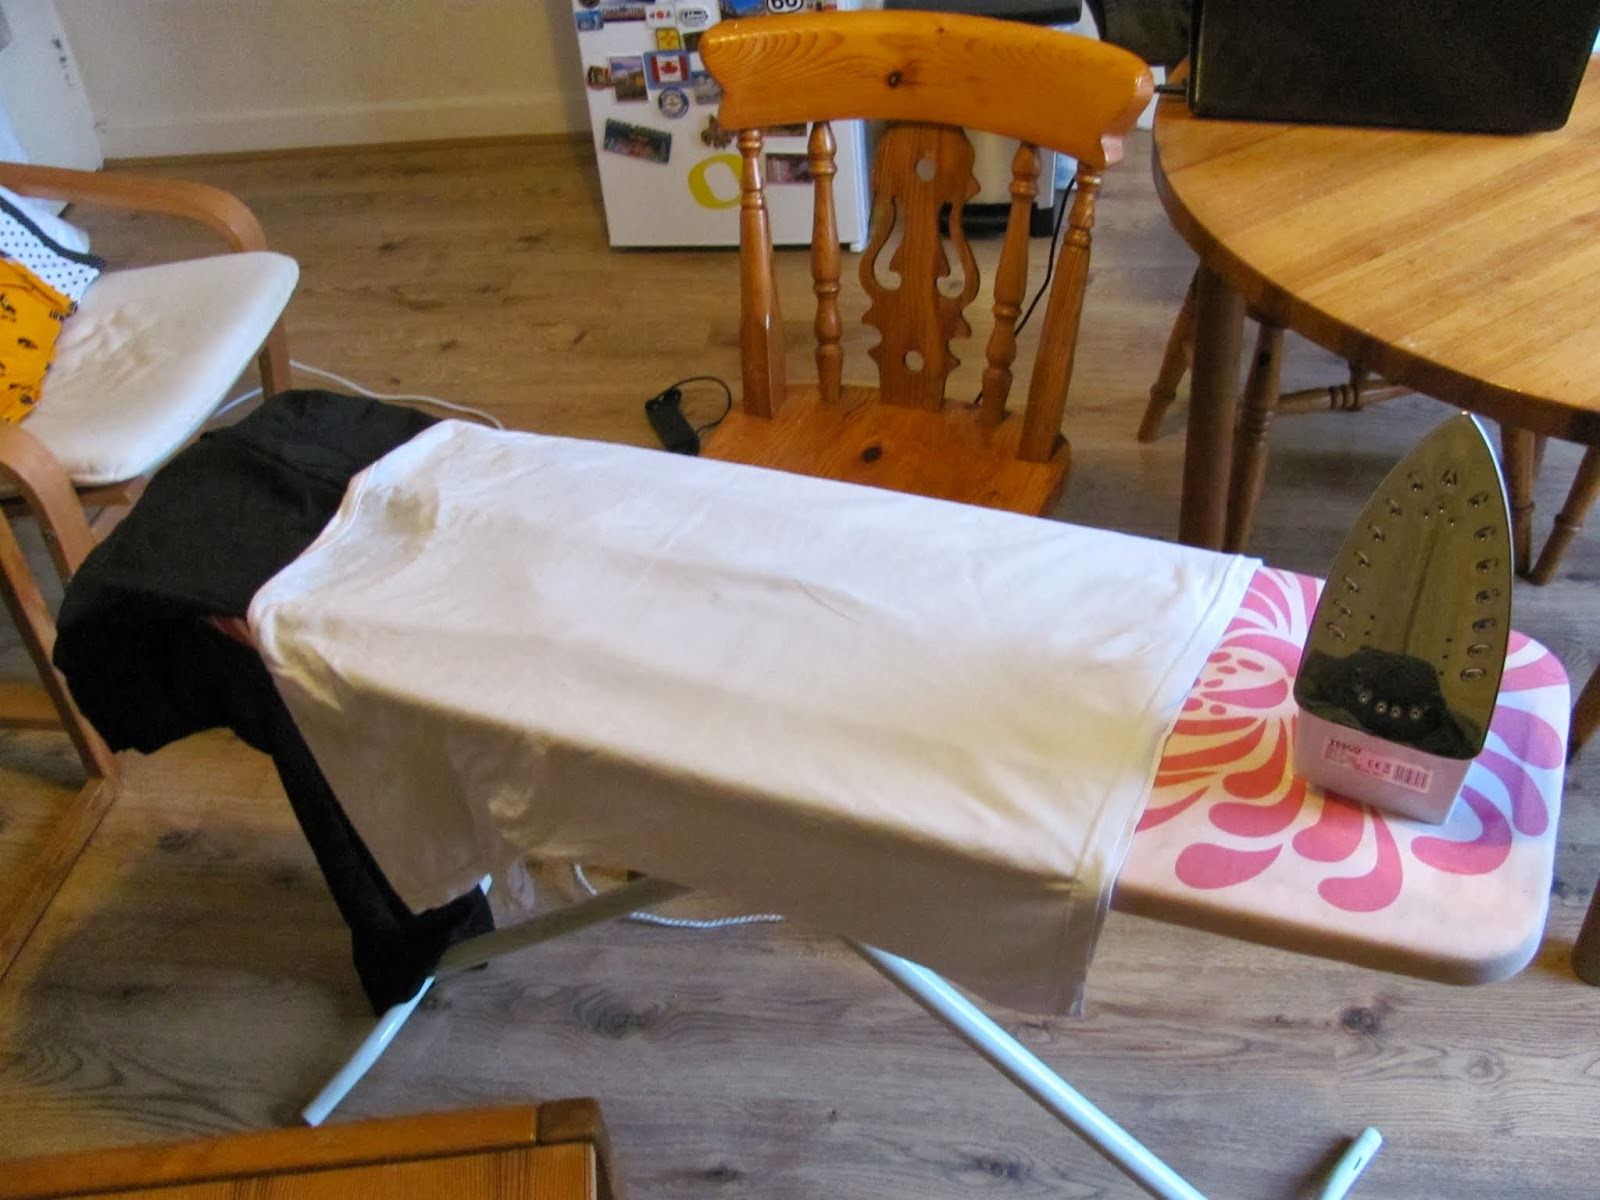 Polyester pants with a damp T-shirt laid over them on an ironing board.